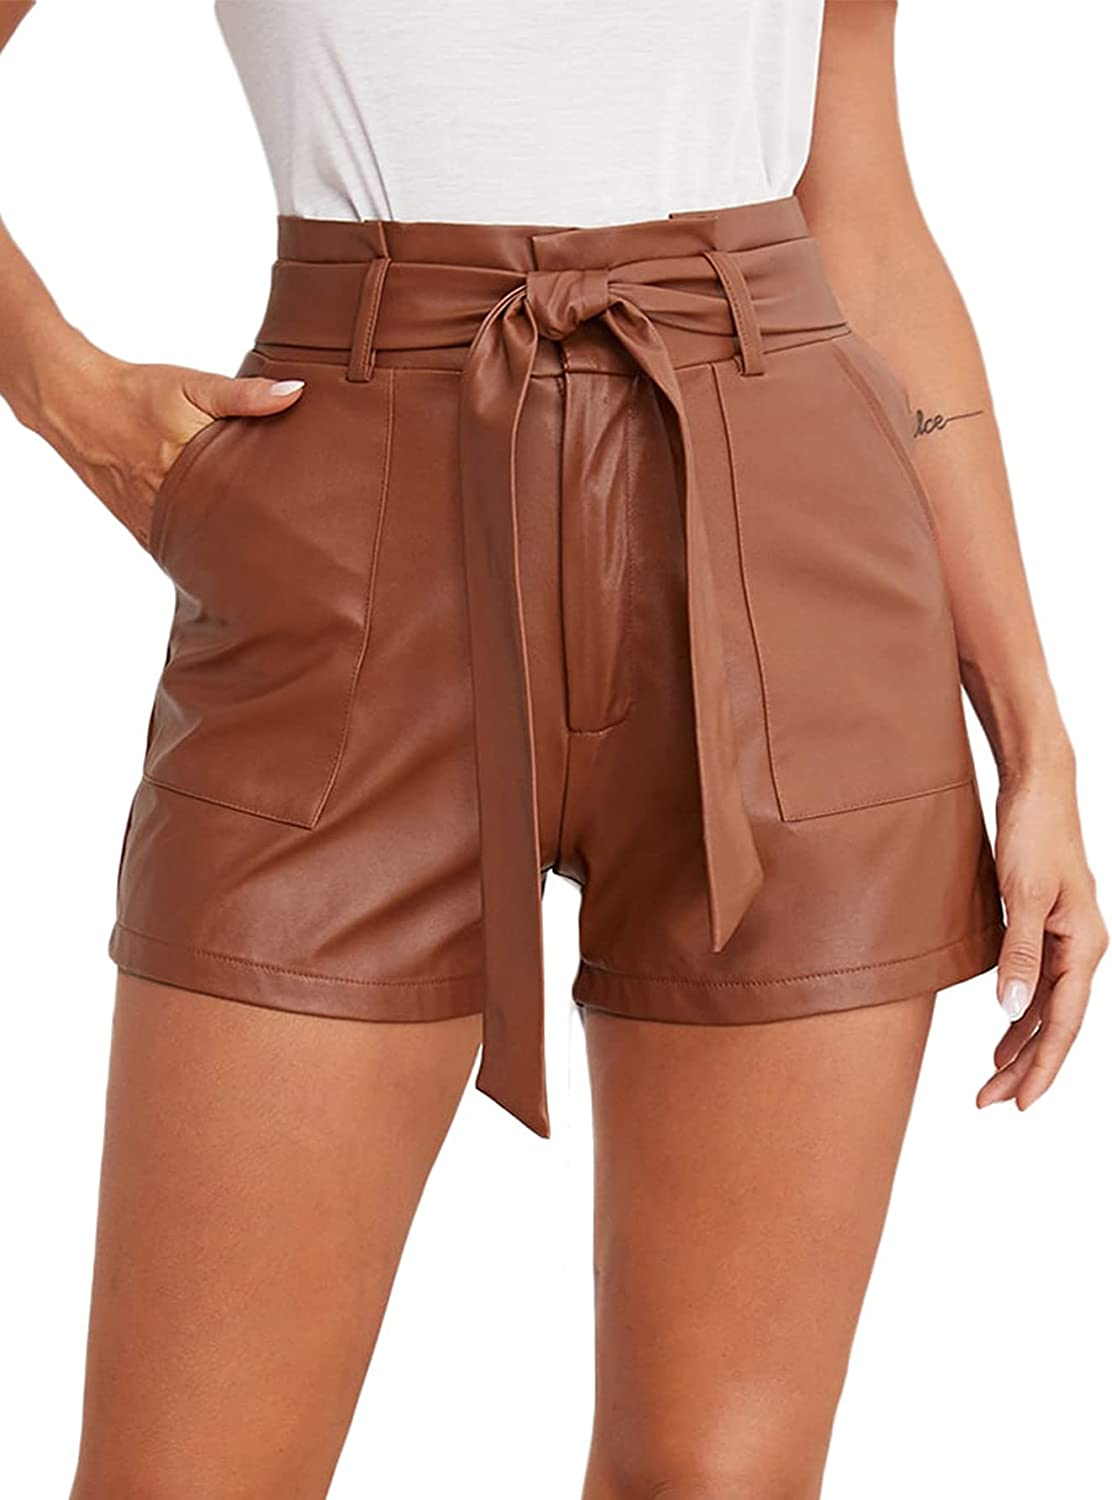 Floerns Women's Casual Belted Wide Leg High Waisted Leather Shorts with Pocket